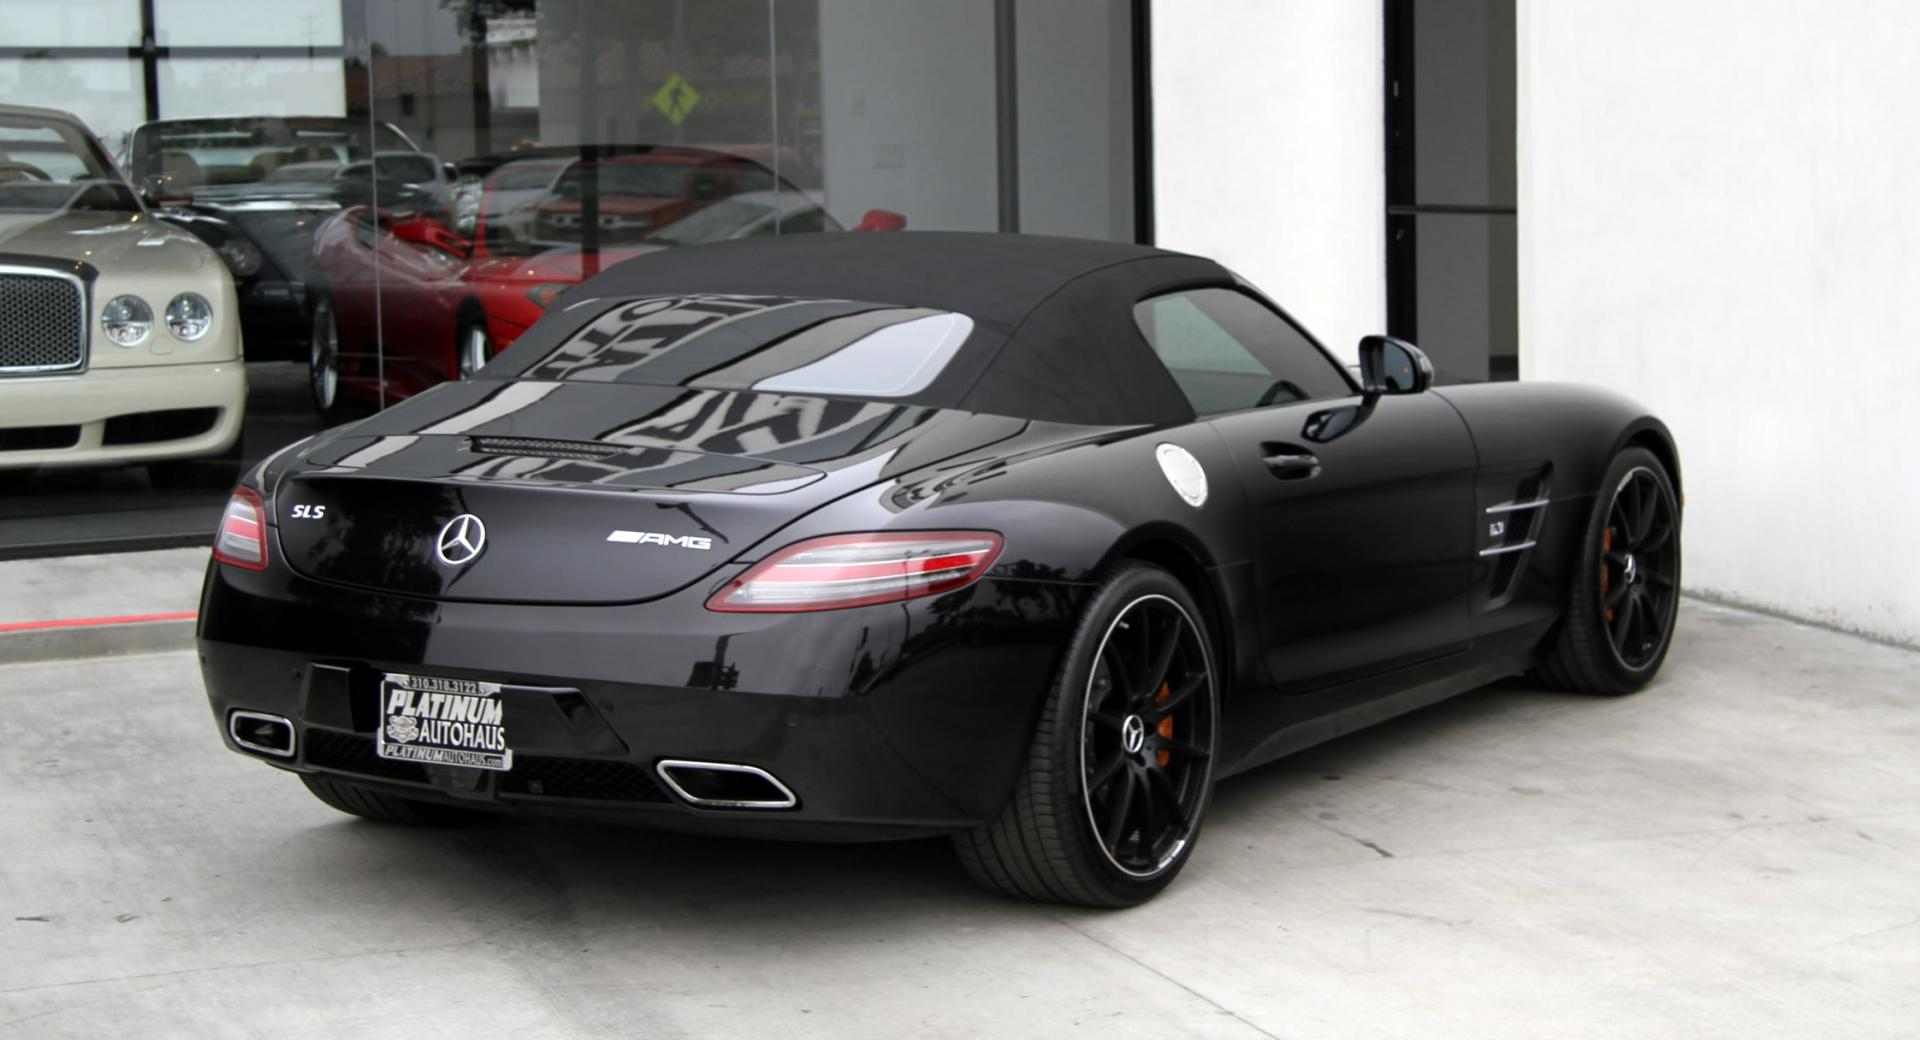 2012 mercedes benz sls 63 amg stock 5903 for sale near for Mercedes benz amg used